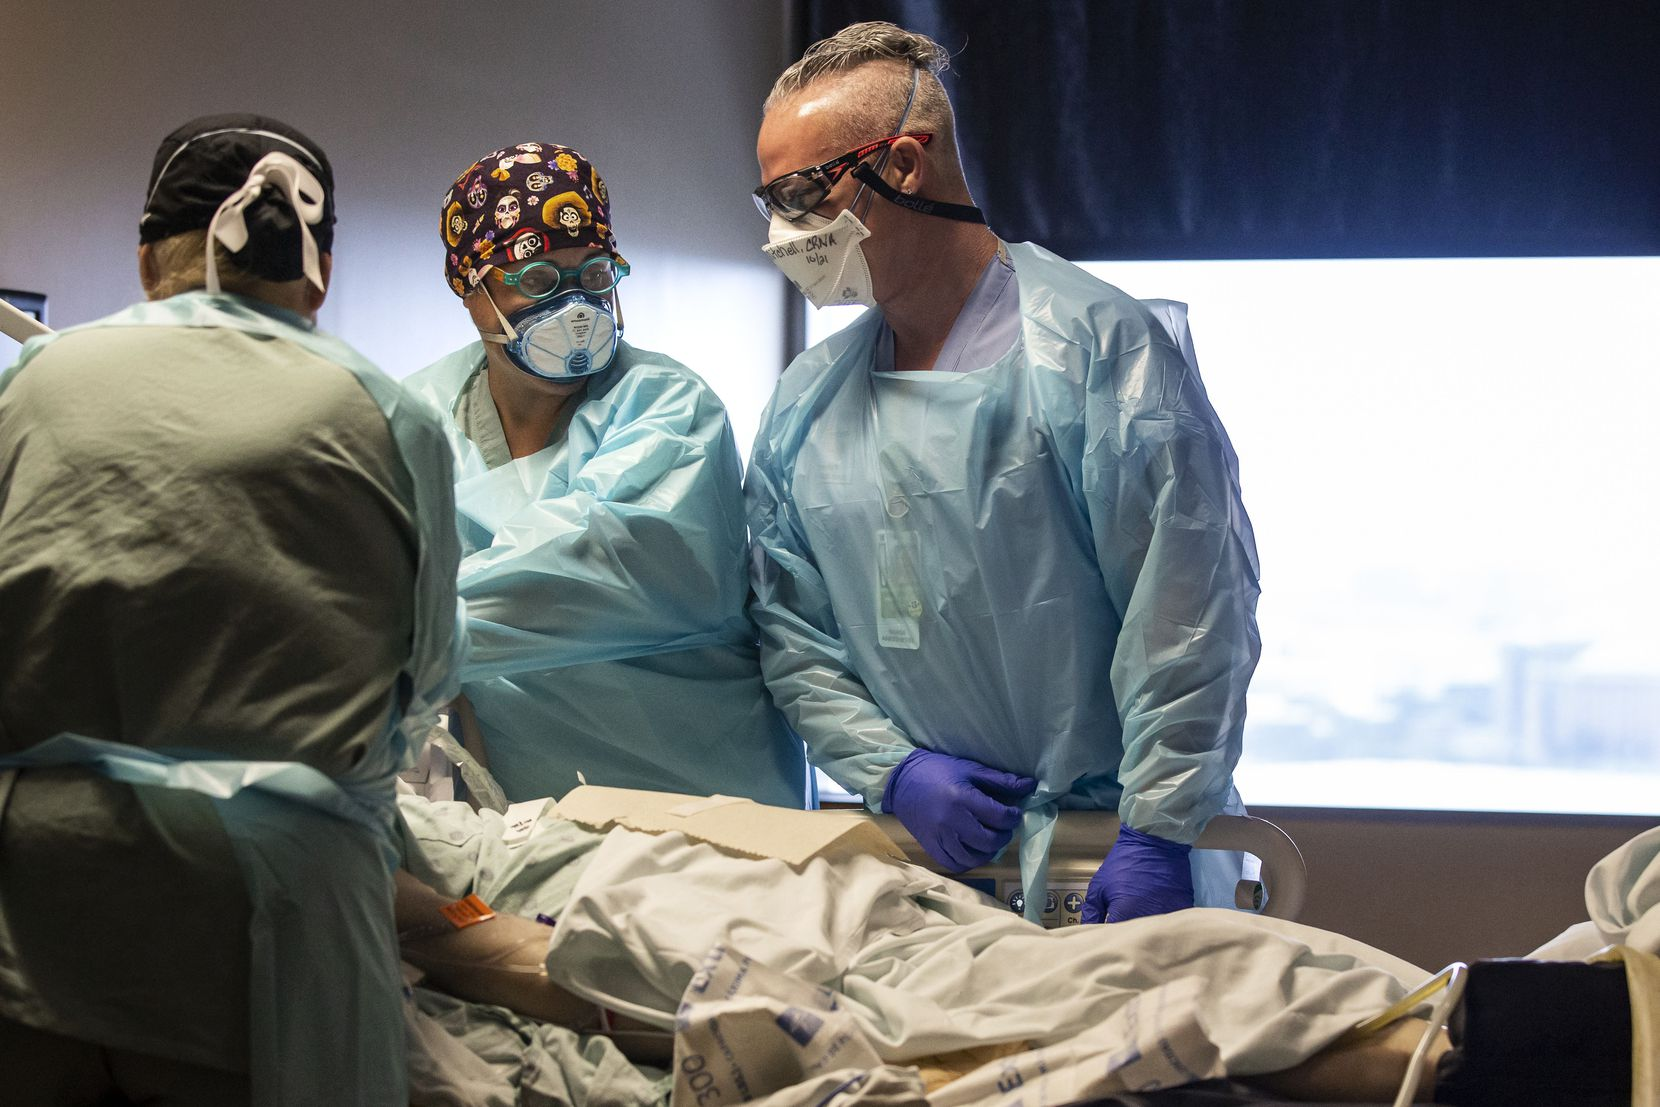 From left, respiratory therapists Shannon Harden and Raquel Martinez, and certified registered nurse anesthetist Brandon Mitchell change a breathing tube for a patient in the COVID-19 intensive care unit at Parkland on Monday.